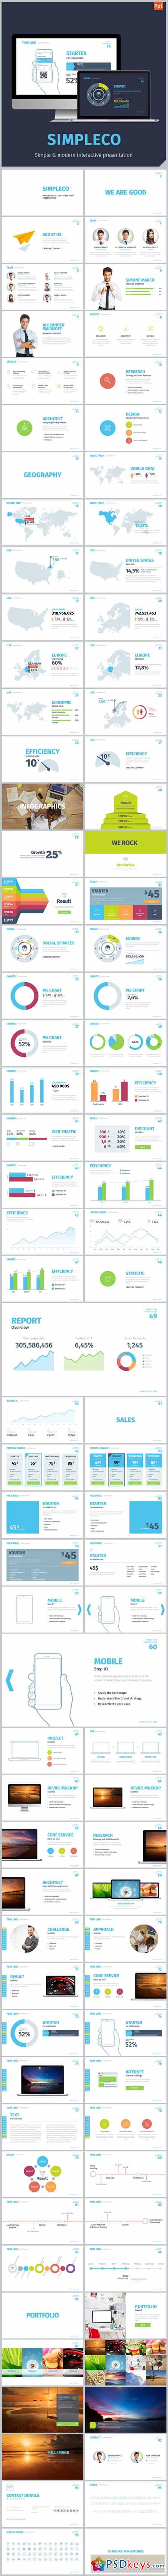 SIMPLECO Simple Powerpoint Template 13220655